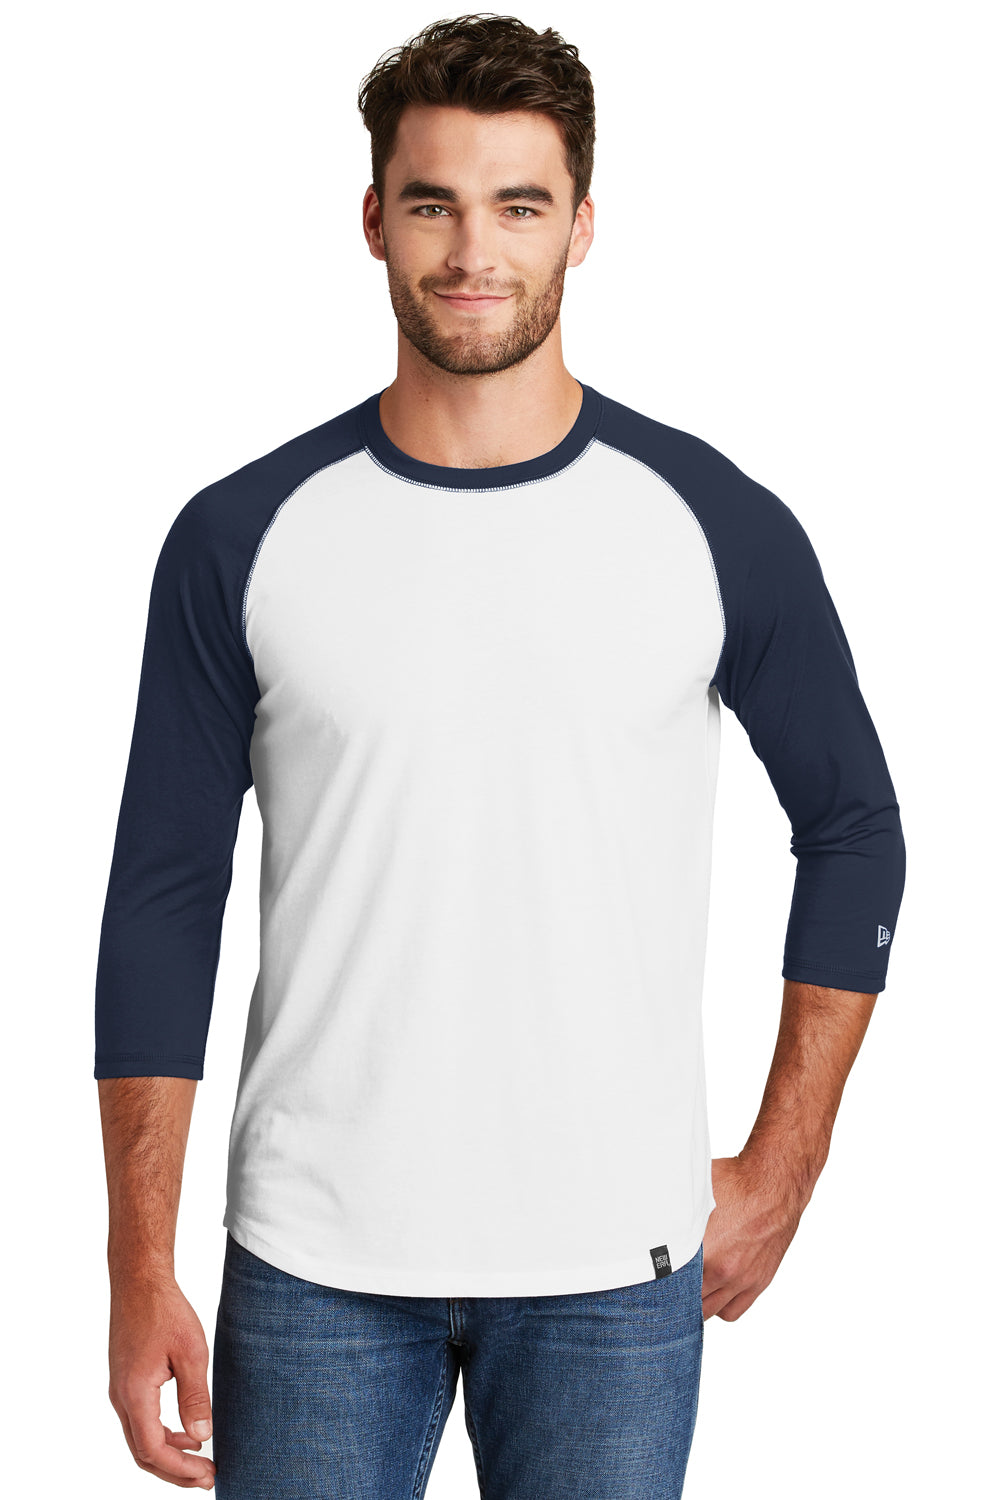 New Era NEA104 Mens Heritage 3/4 Sleeve Crewneck T-Shirt Navy Blue/White Front